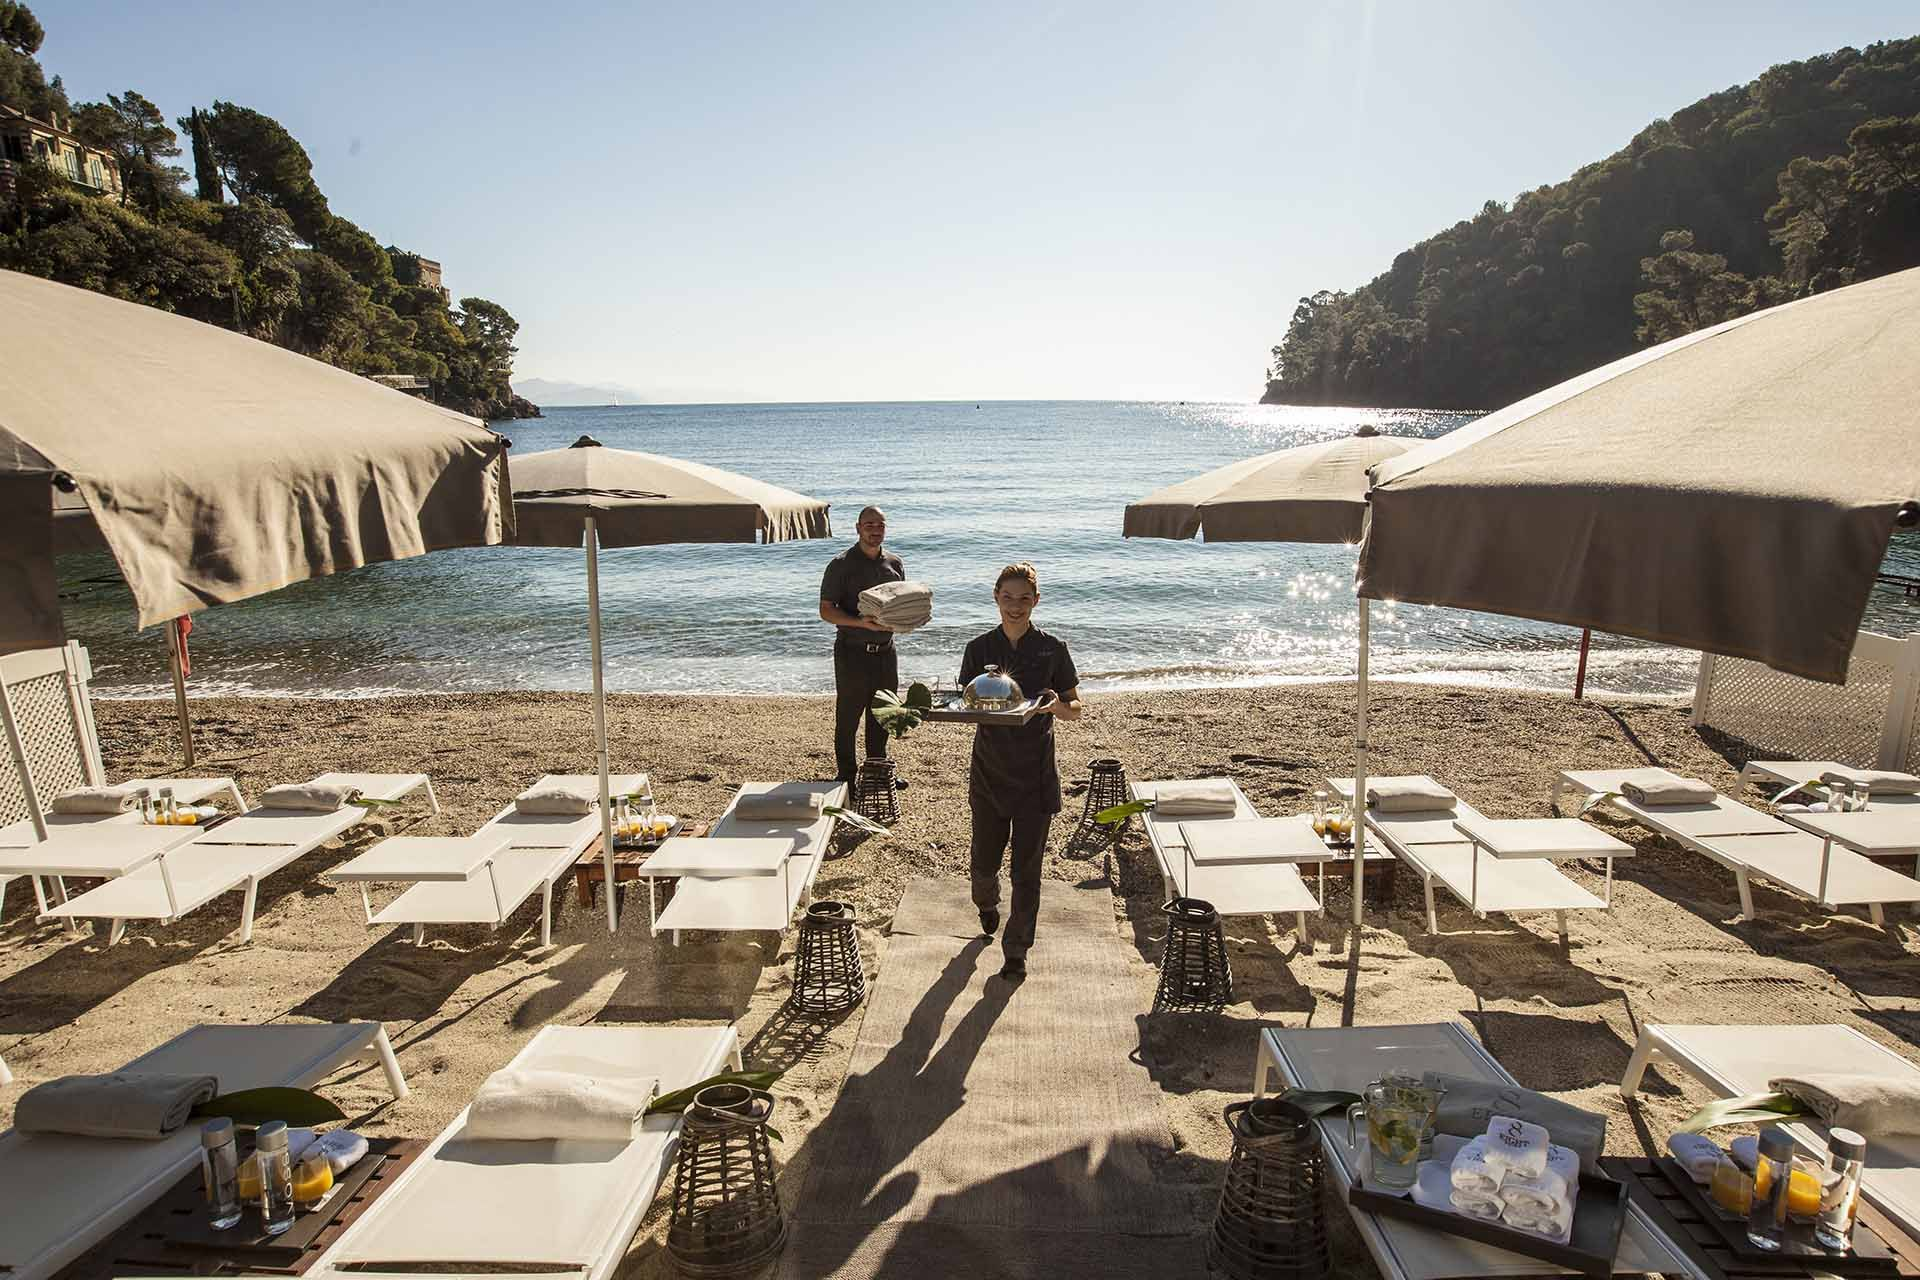 Private Beach Hotel In Liguria Wedding Venue On The Italian Riviera Discover Eight Paraggi And Its Exclusive With Gold Coloured Sand